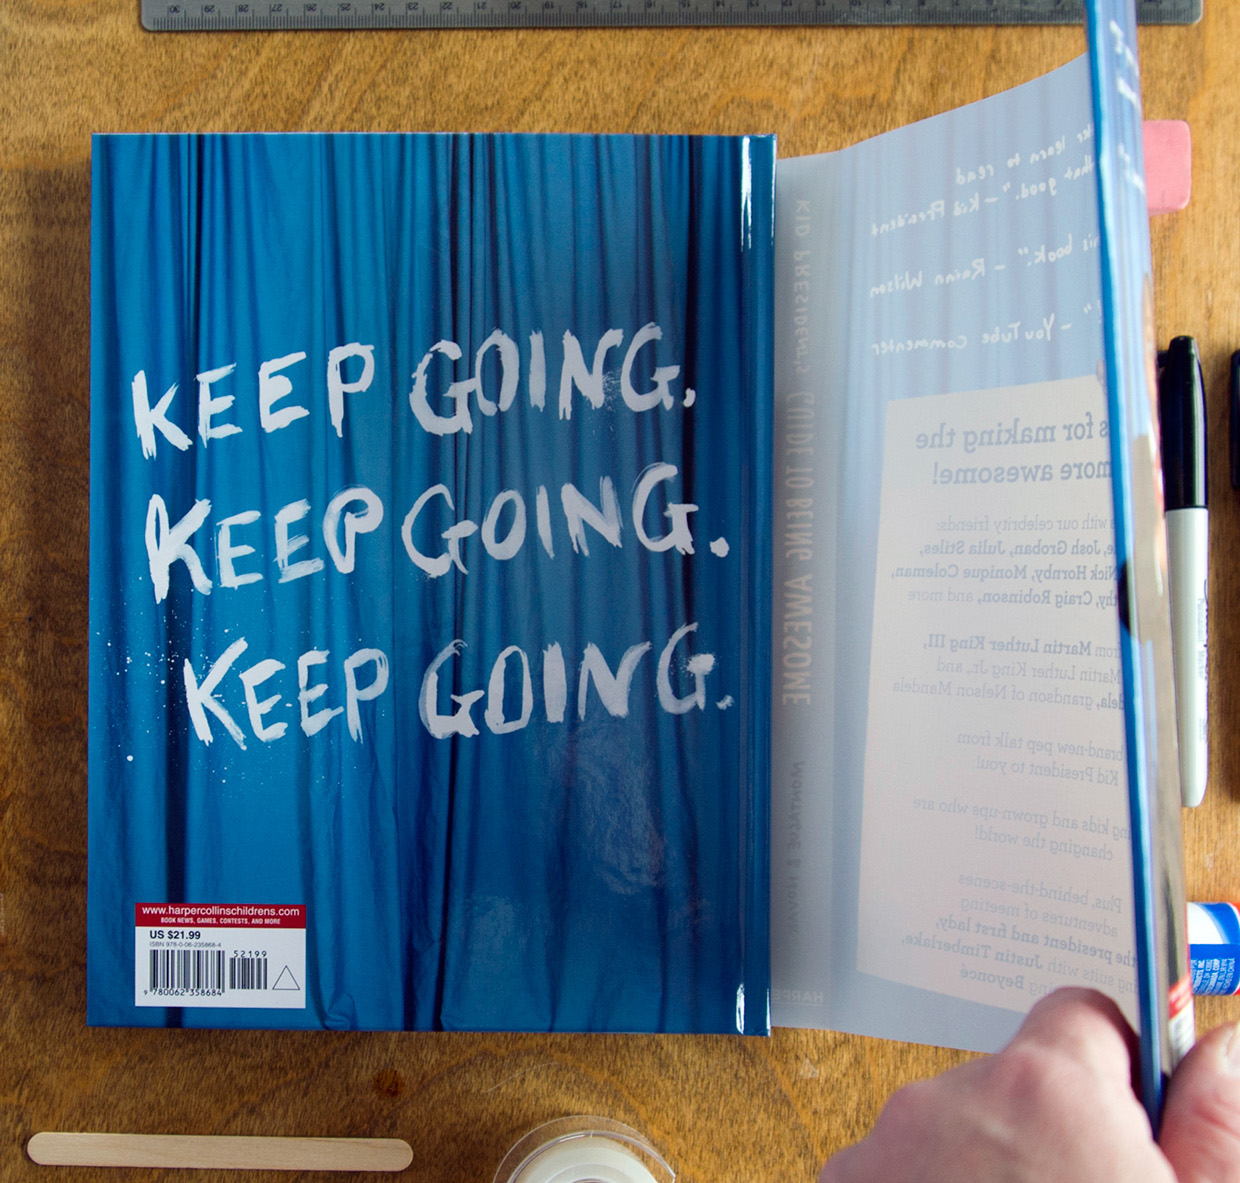 Keep Going brush lettering by hand on hardcover back design of kid president book underneath the dust jacket french fold flap